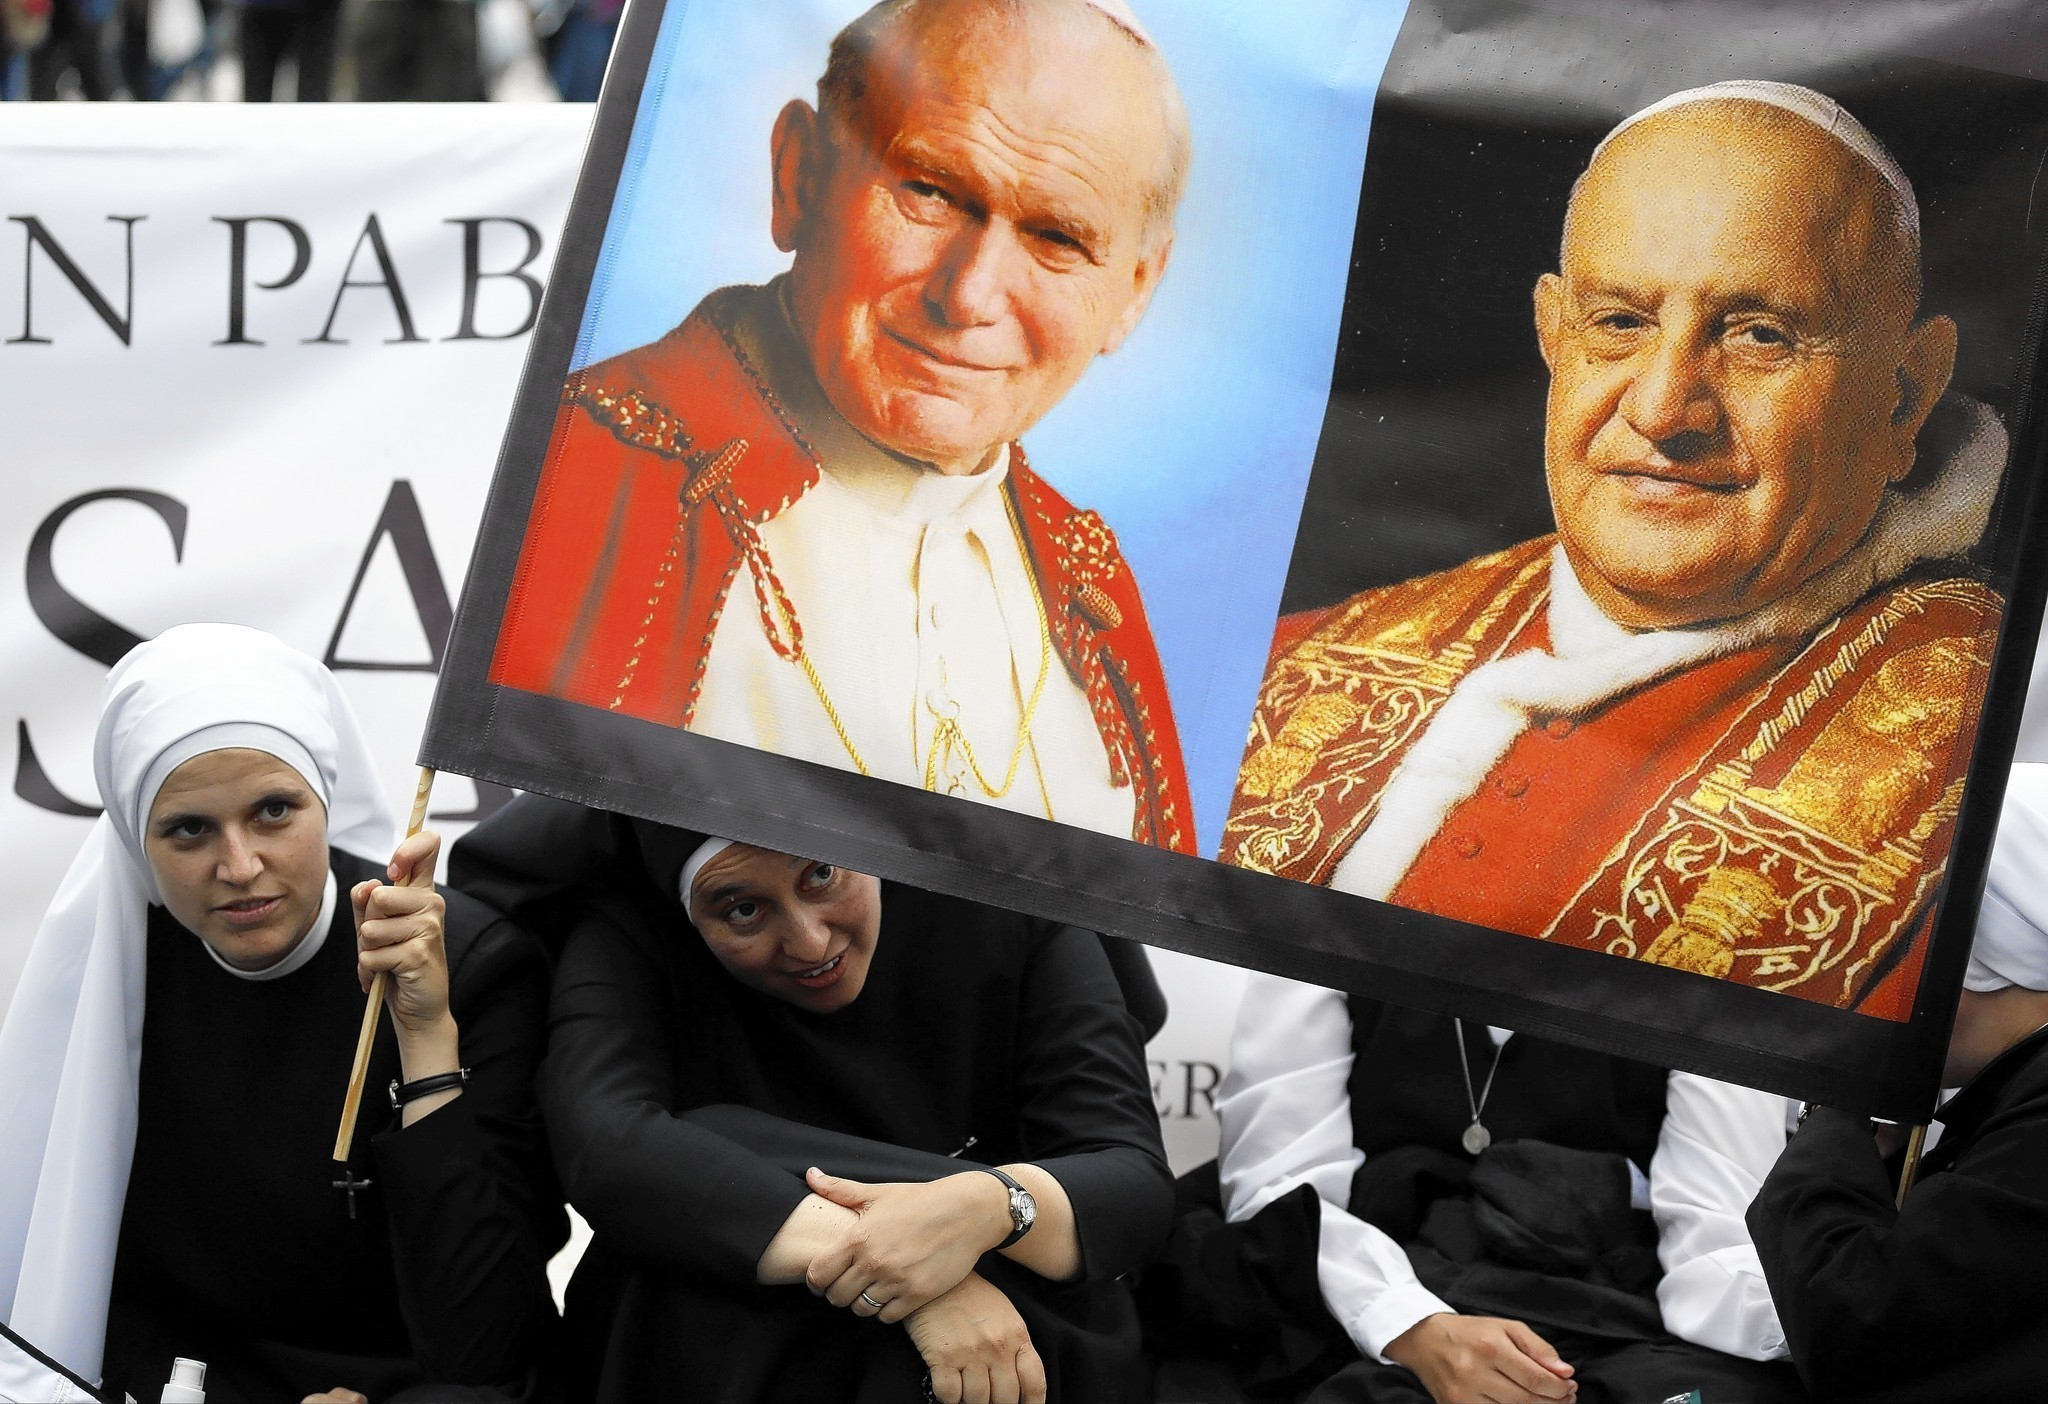 Canonization of Popes John Paul II and John XXIII